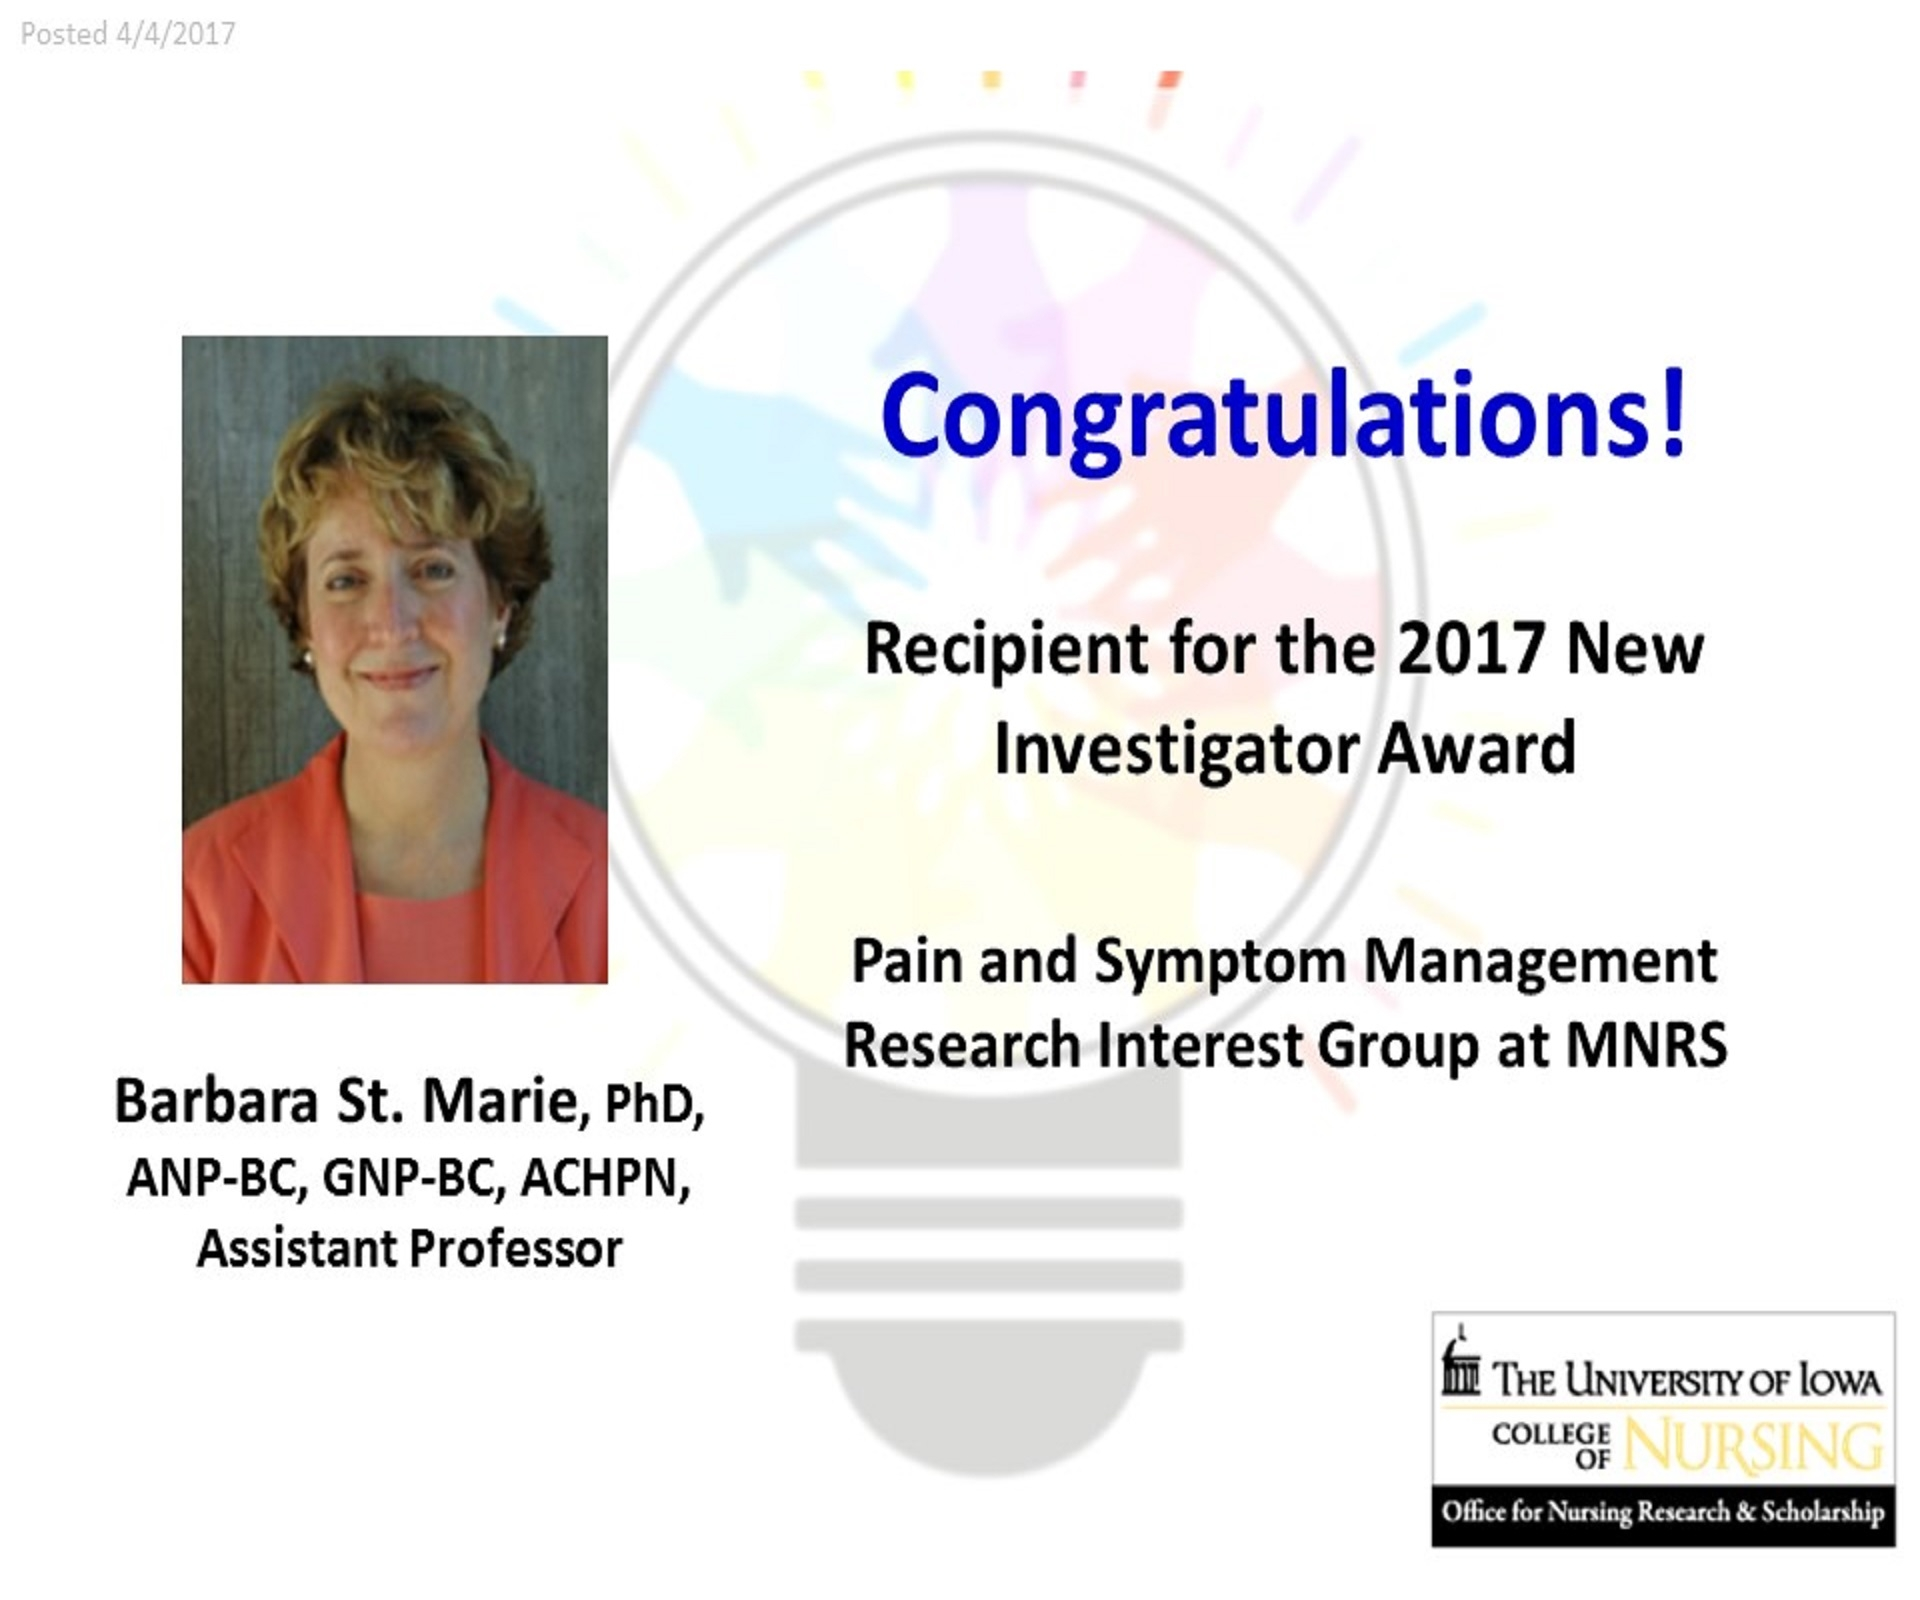 p_St Marie MNRS award-April 2017_1920x1600.jpg